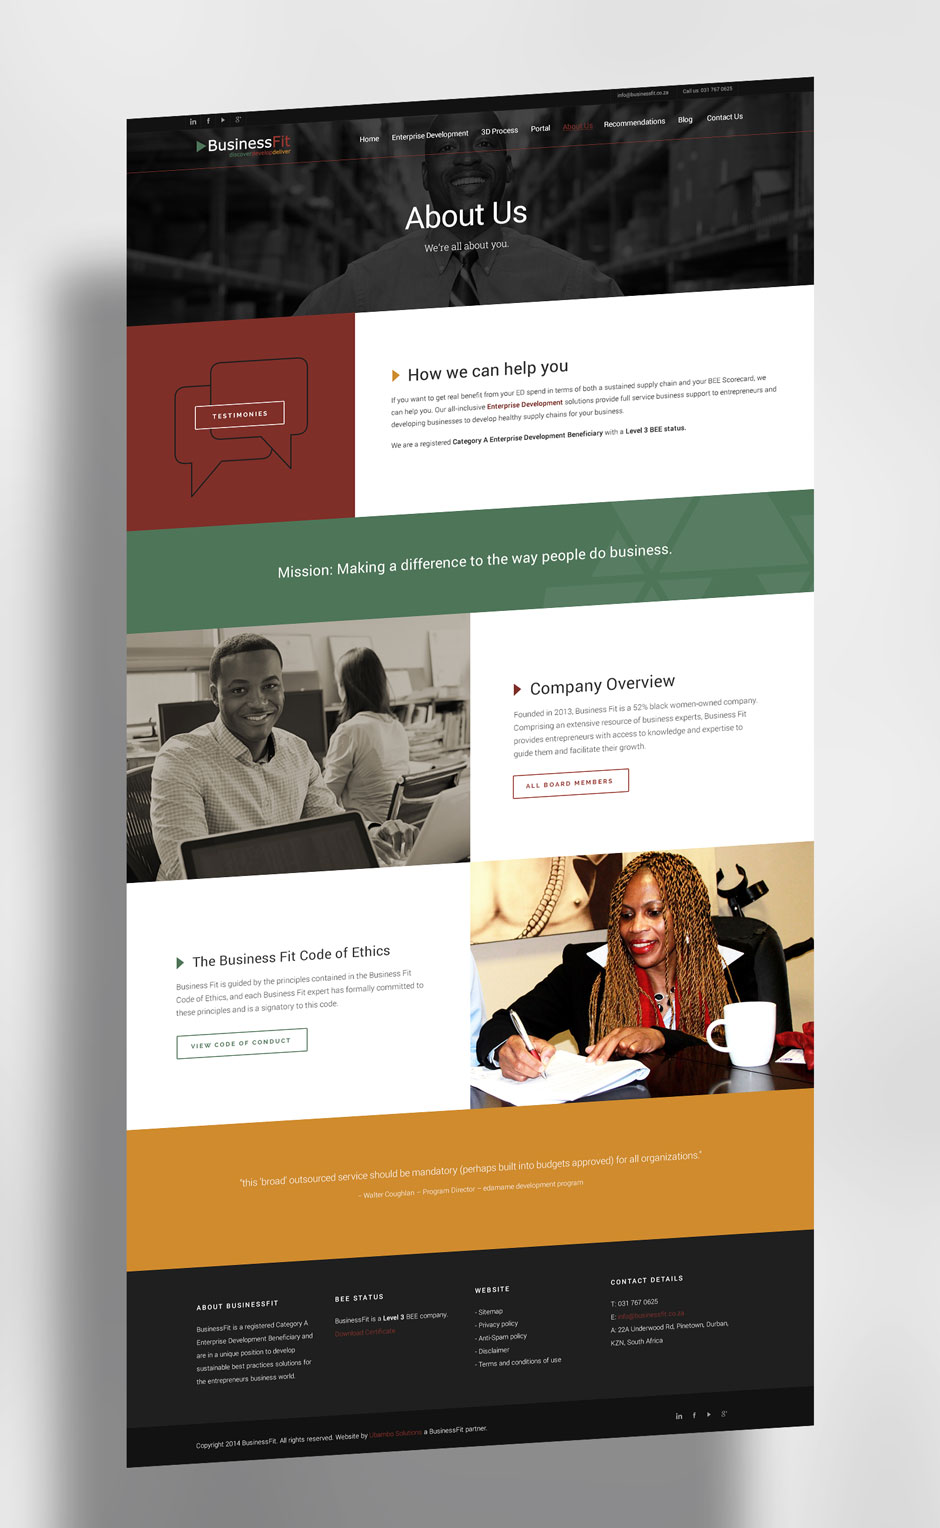 WordPress Website Builder - BusinessFit - About Us Page